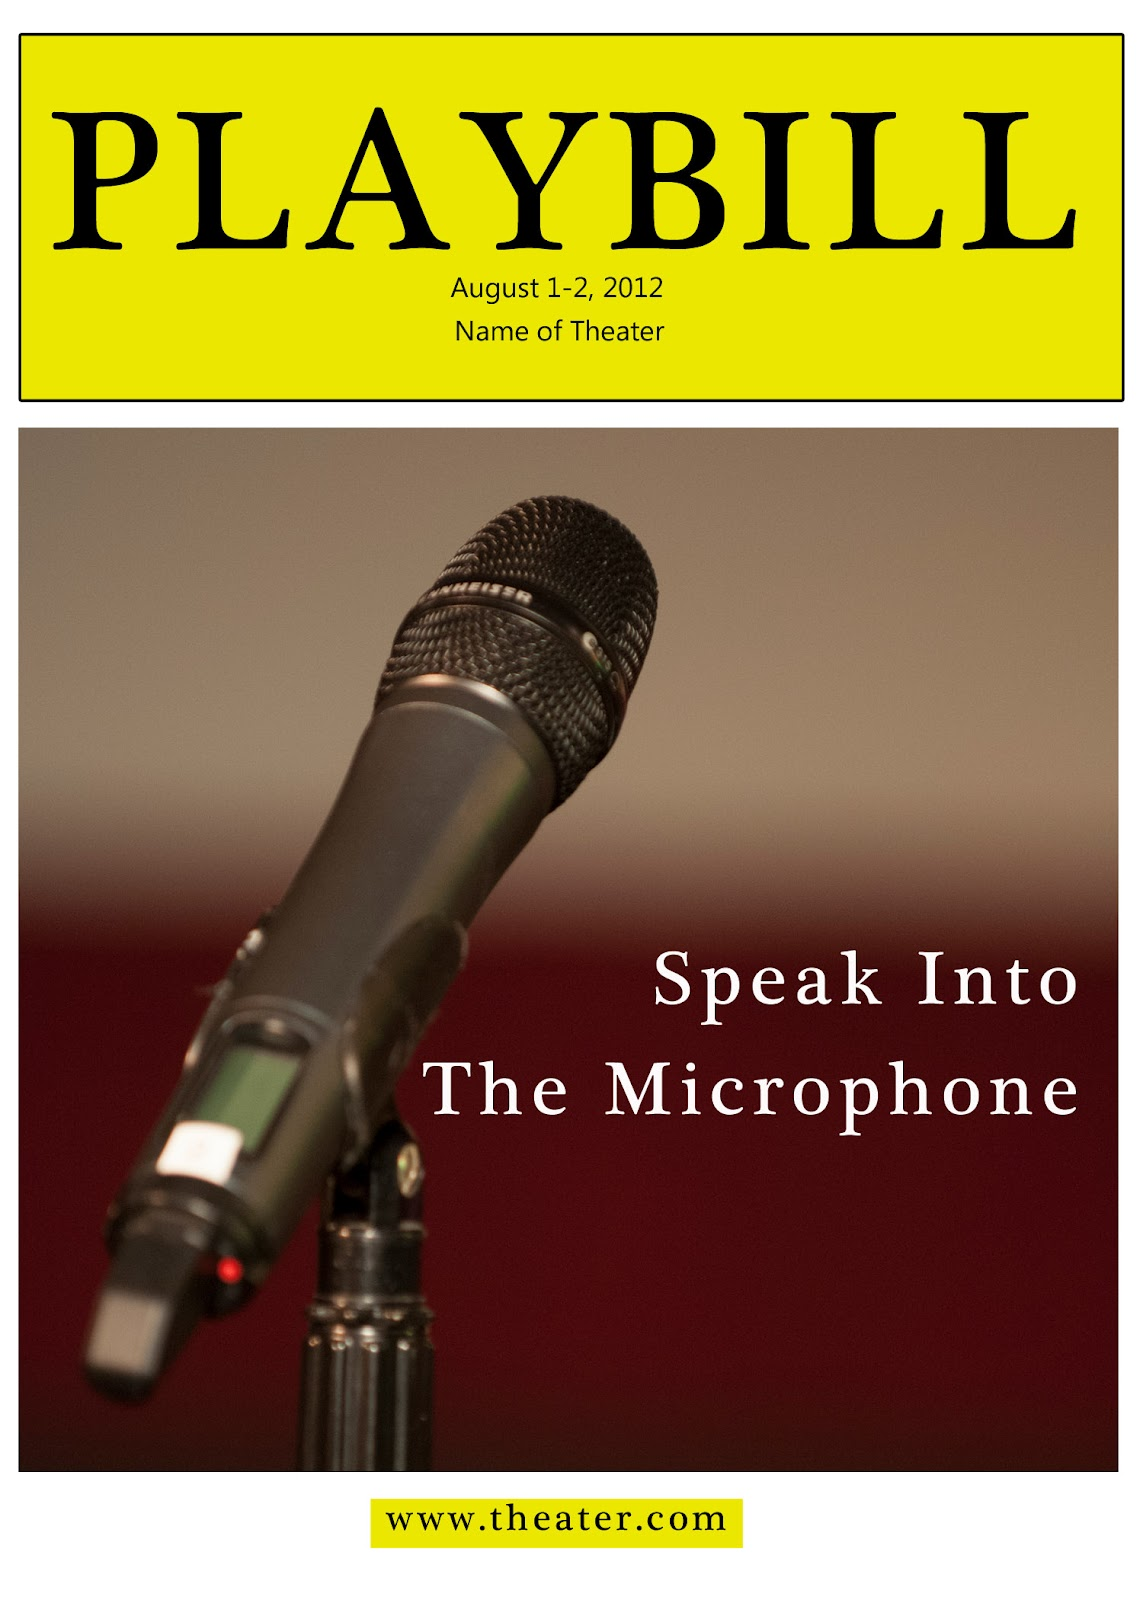 Playbill Cover Template